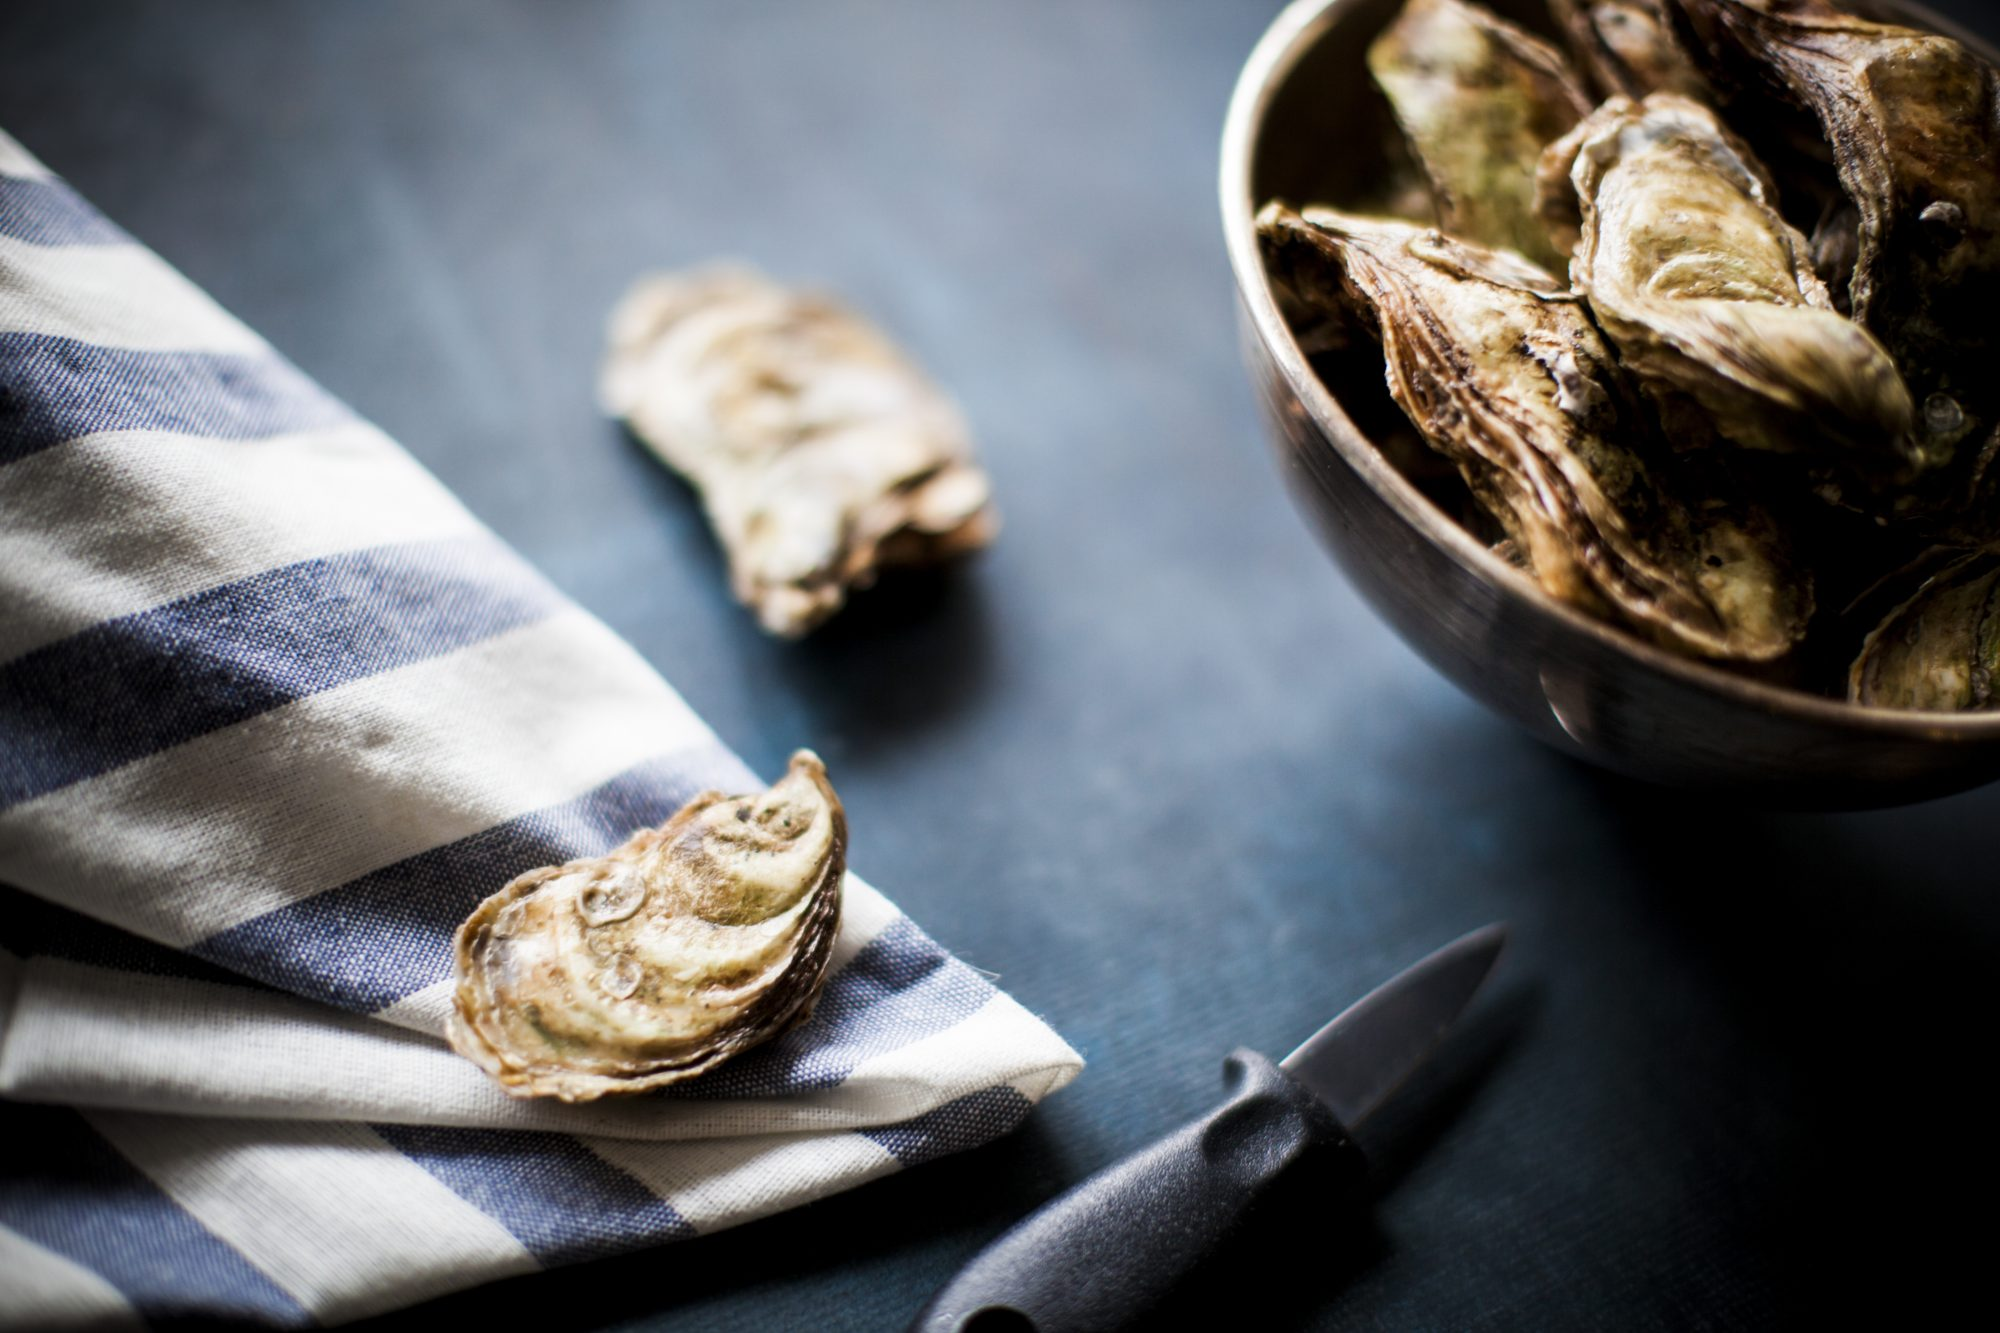 Easy Oyster Recipe Ideas - Southern Living